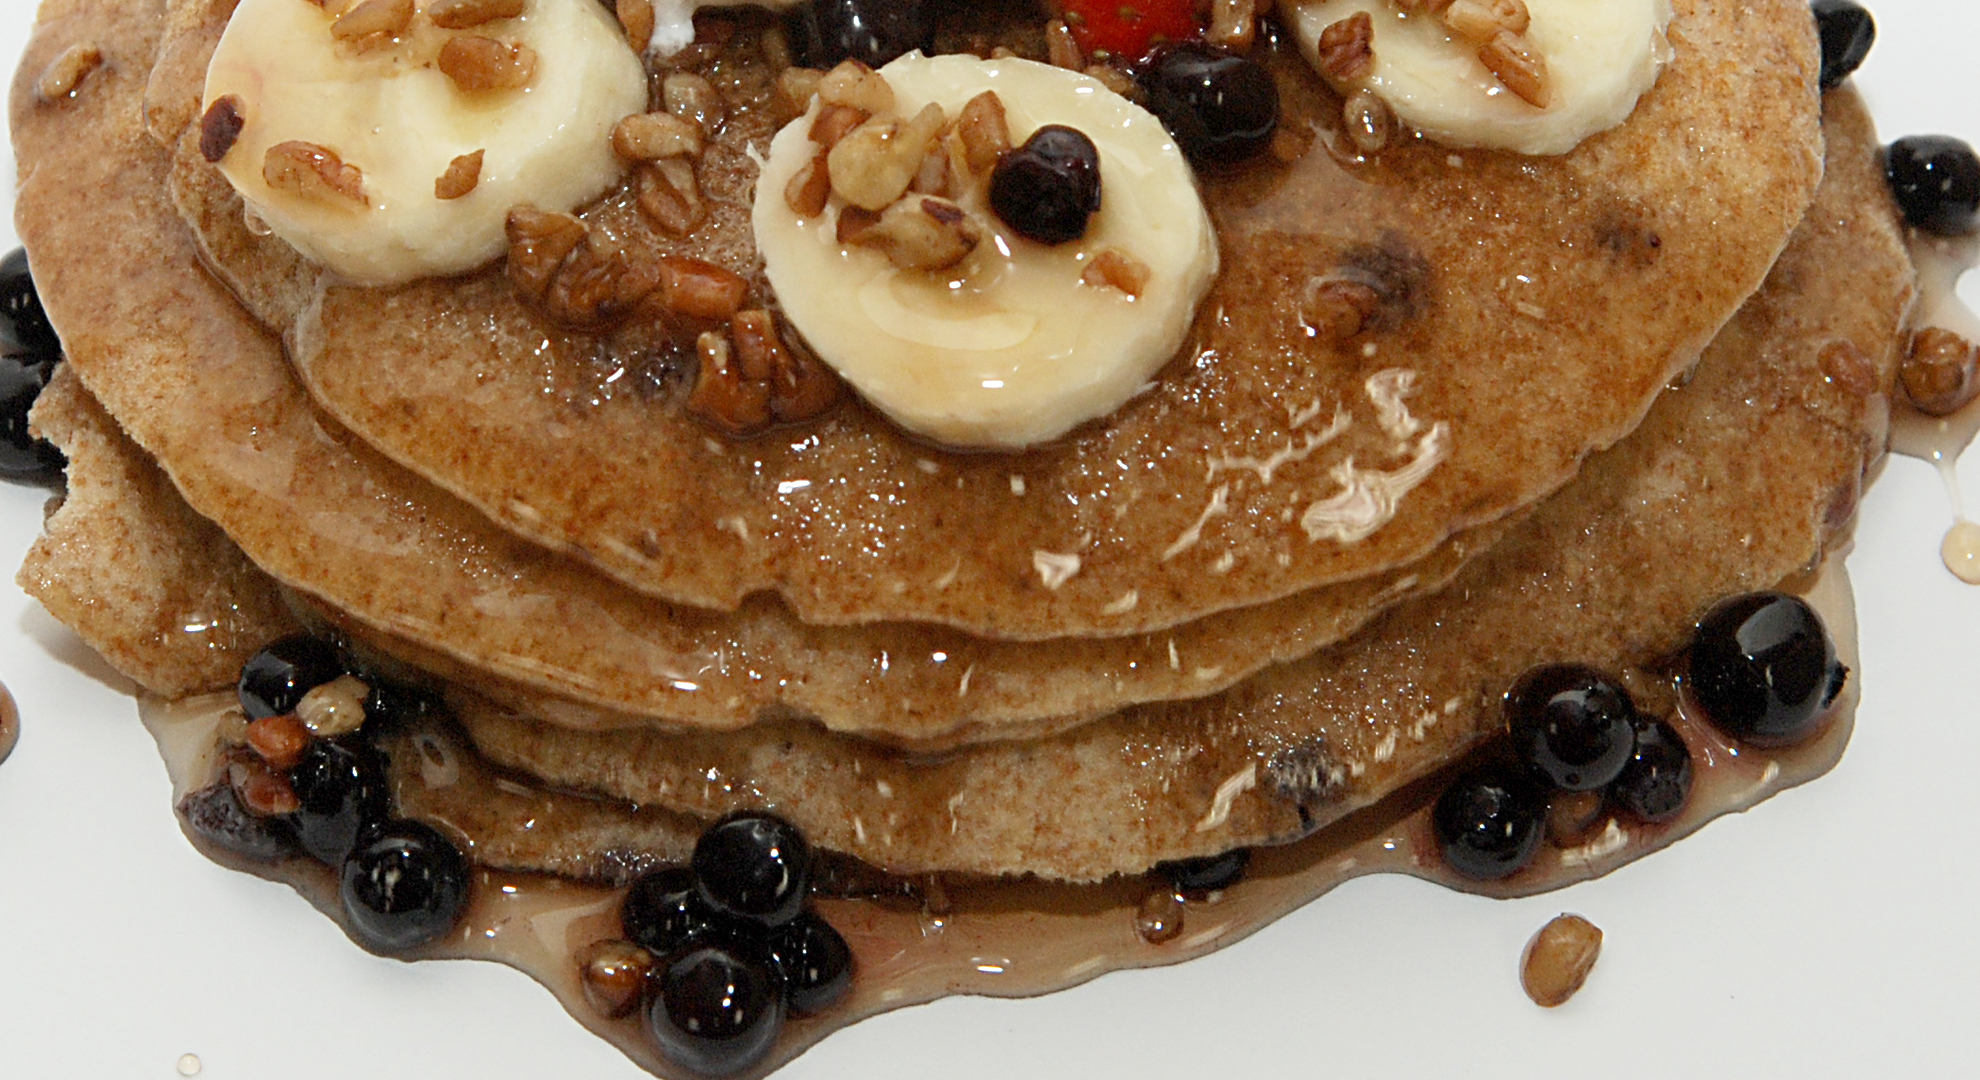 Whole wheat pancakes with bananas, blueberries and pecans dripping with syrup.